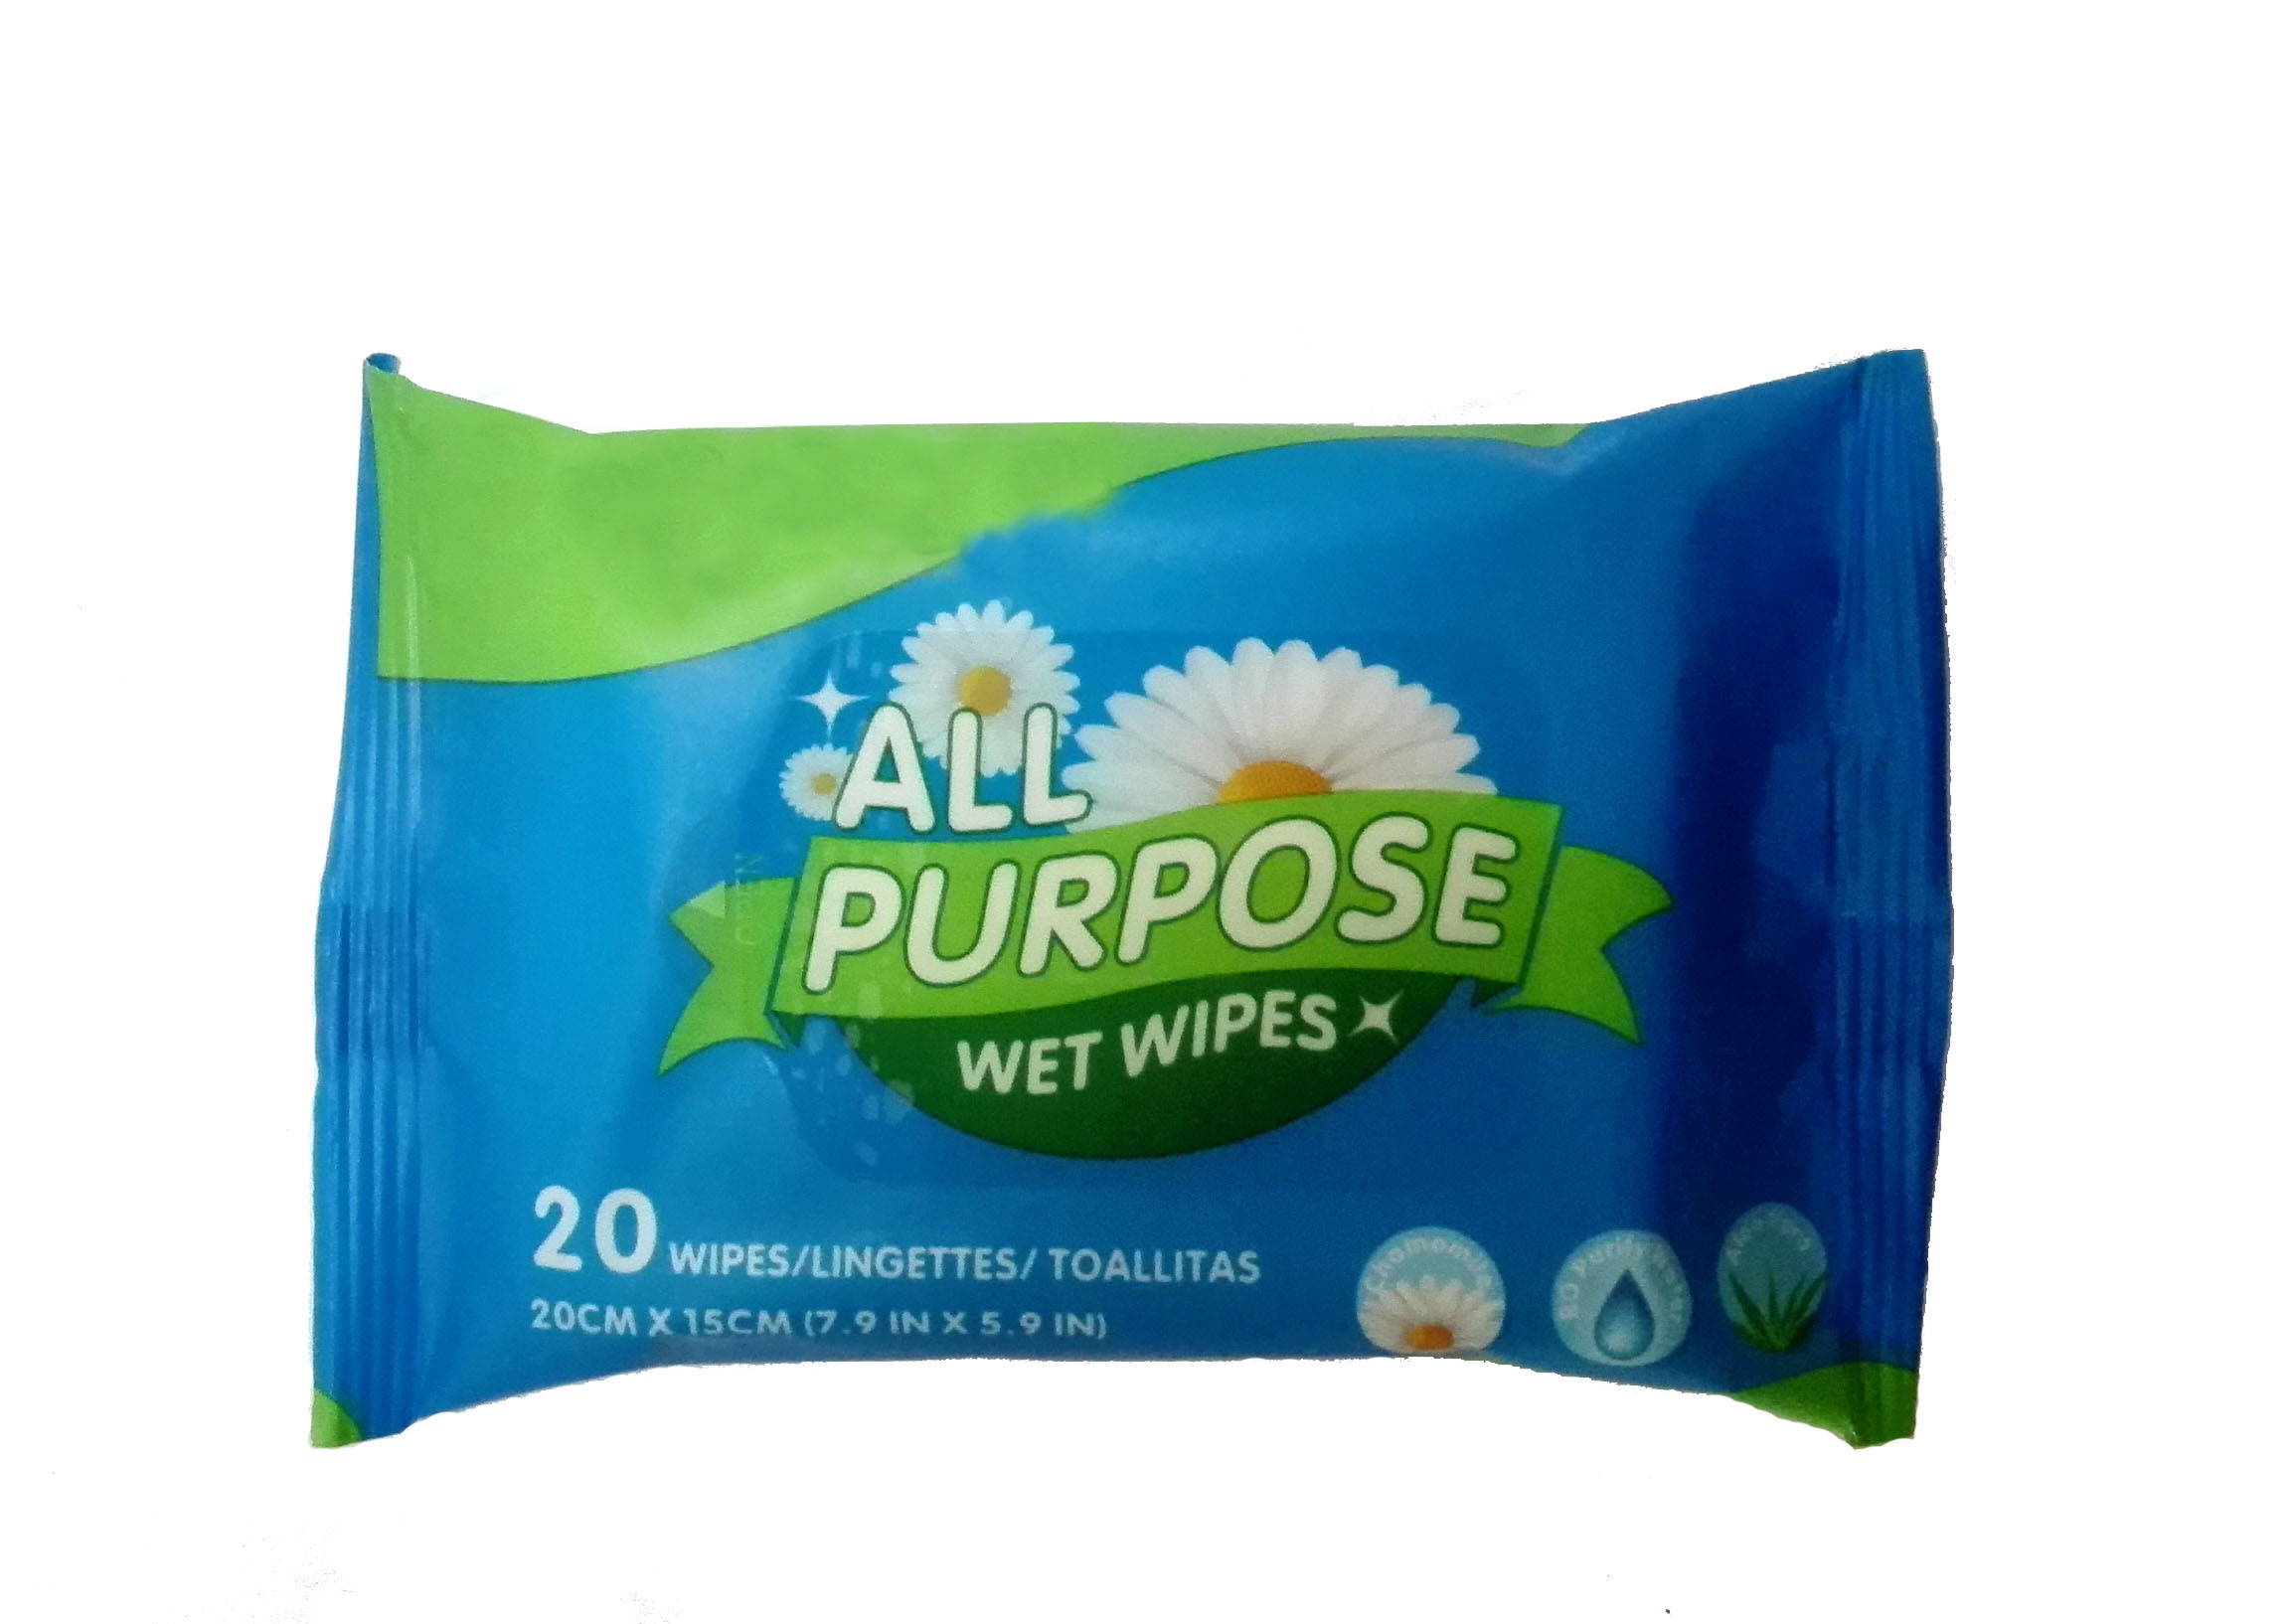 Antibacterial Hygiene wipes with Aloe Vera